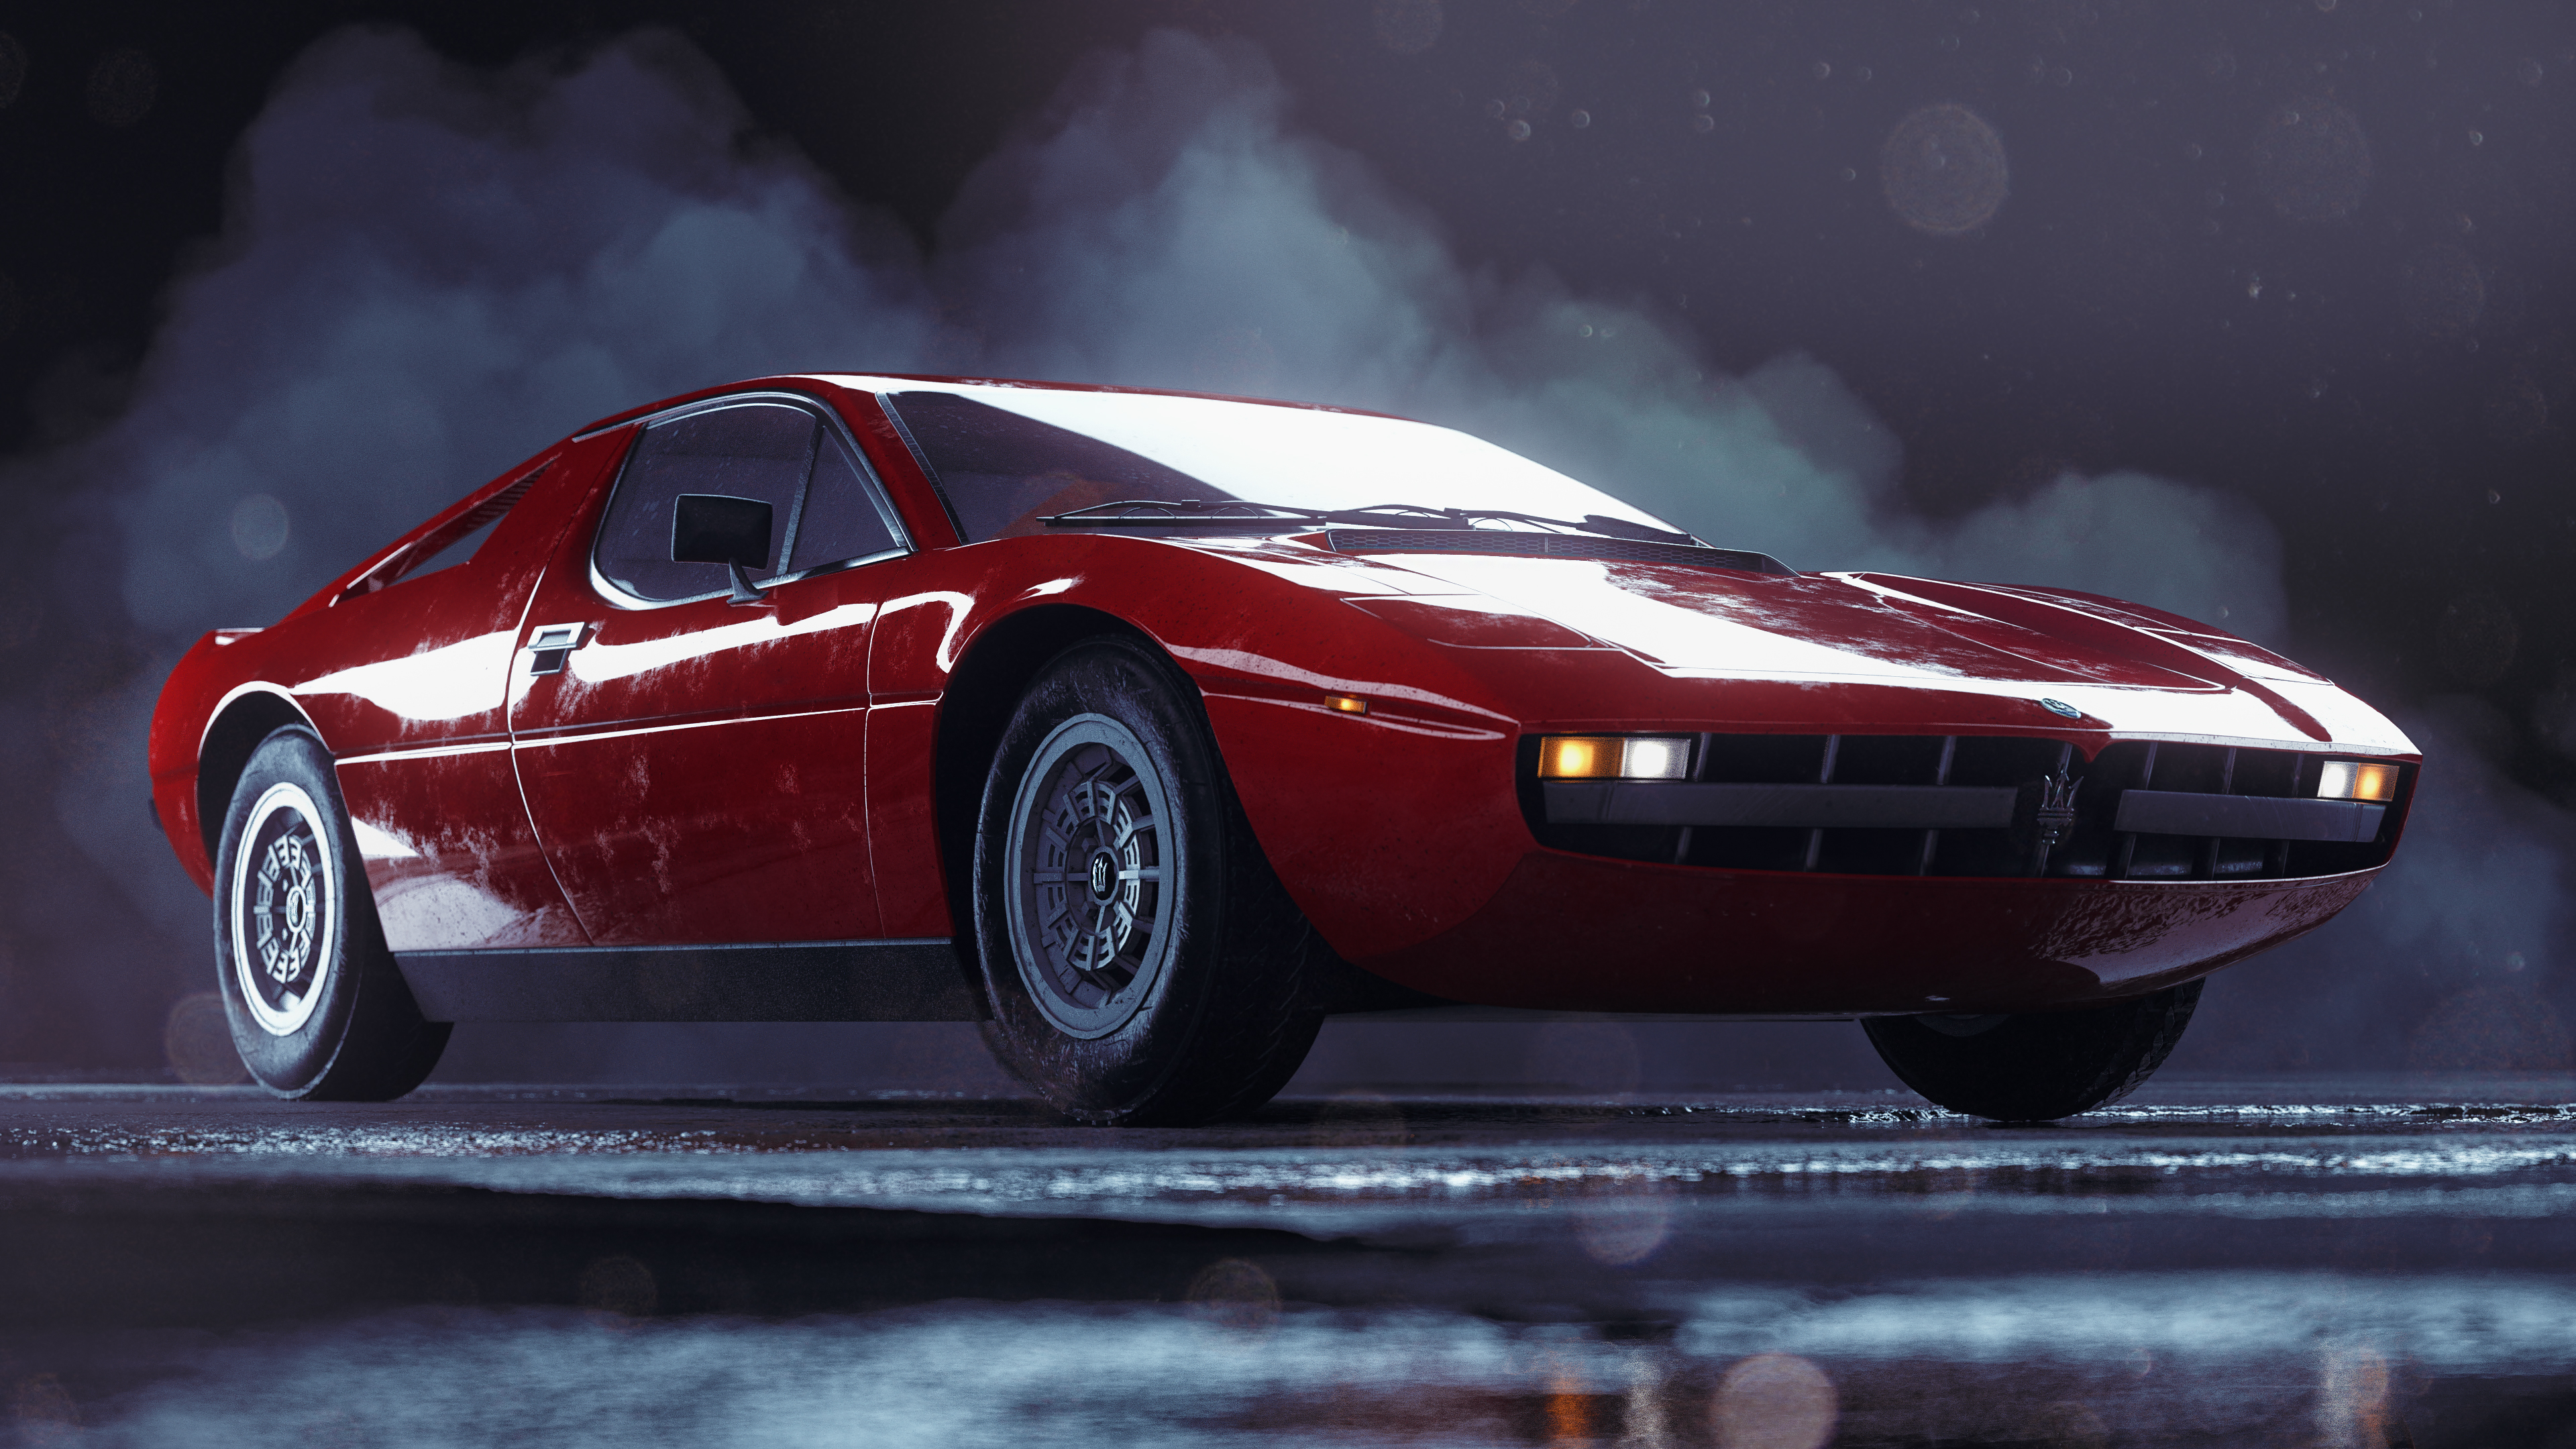 Vintage Maserati Hd Cars 4k Wallpapers Images Backgrounds Photos And Pictures